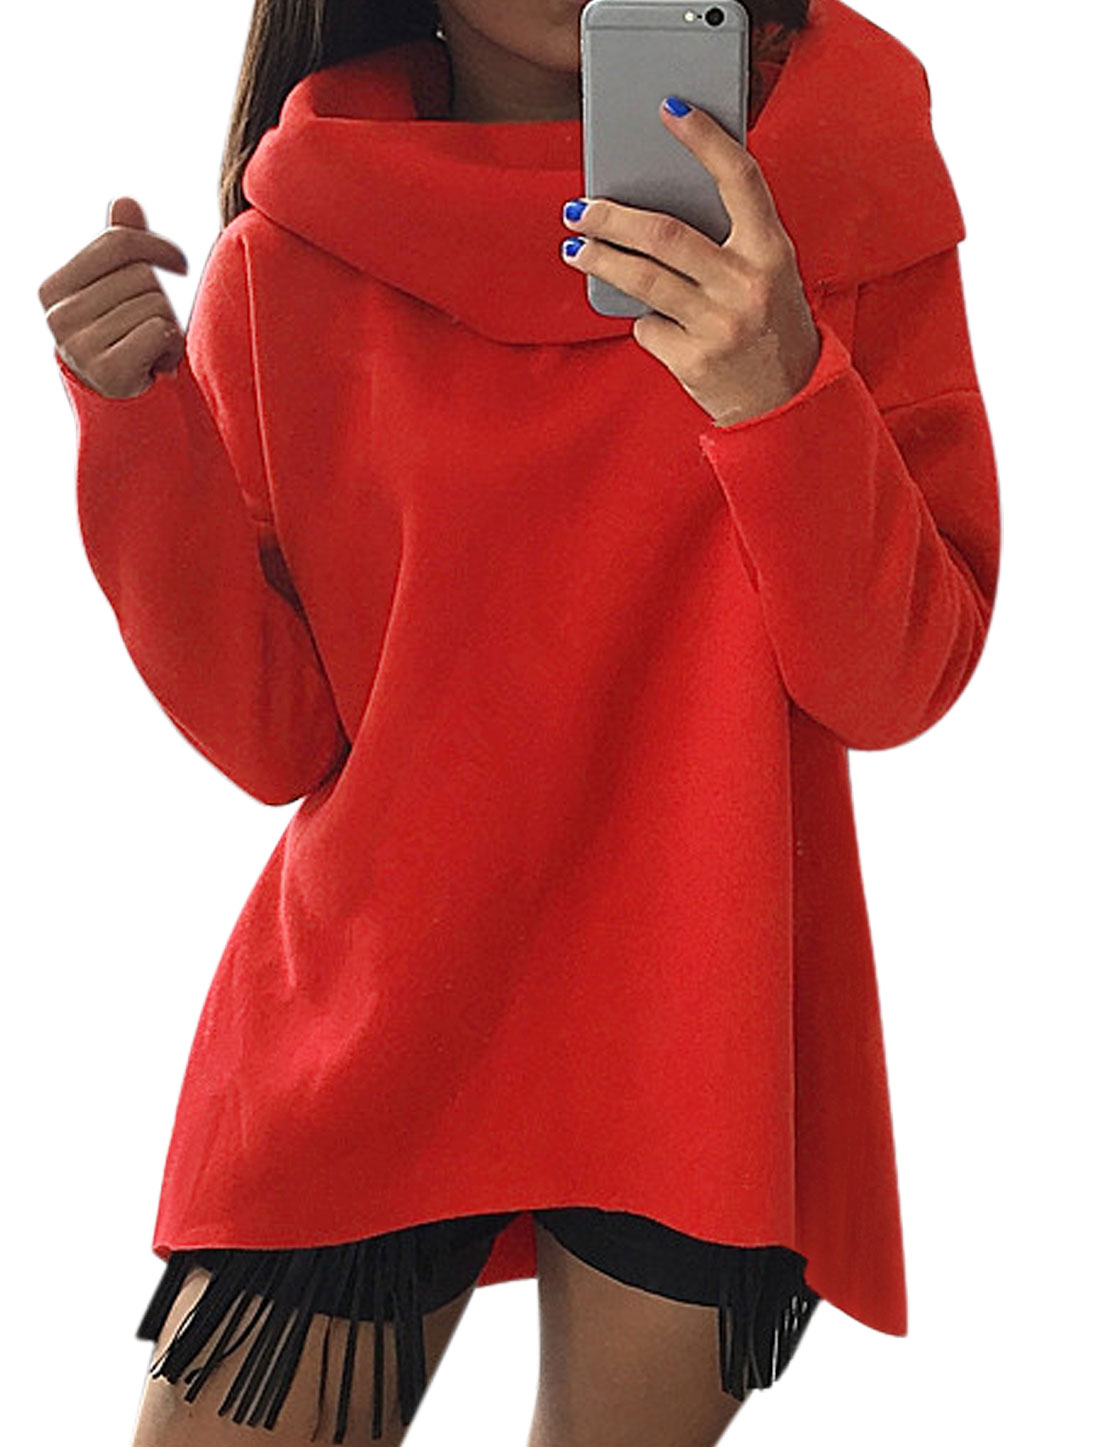 Women Cowl Neck Dolman Sleeves Hi-Lo Sweatshirt Red XS